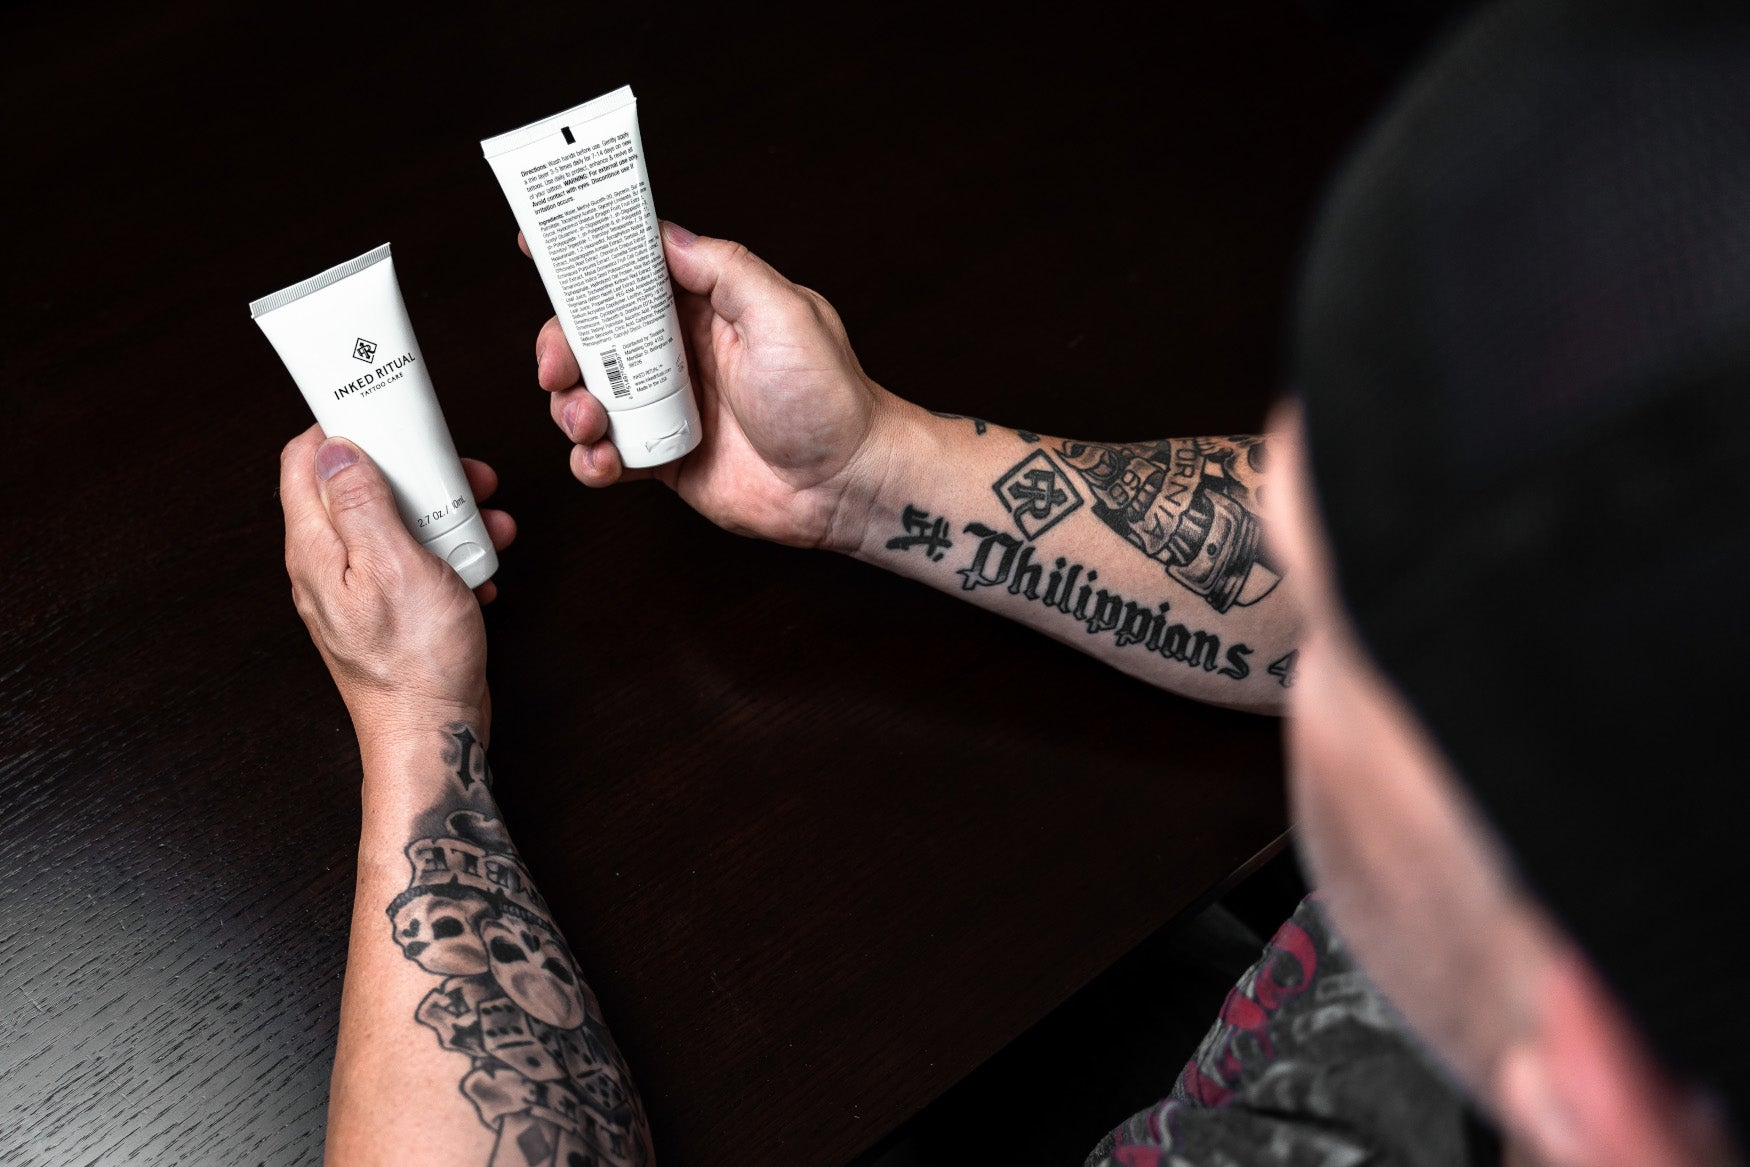 Man with Tattooed Forearms Holding two Inked Ritual Tattoo Care Serum Philippians 4:13 Tattoo